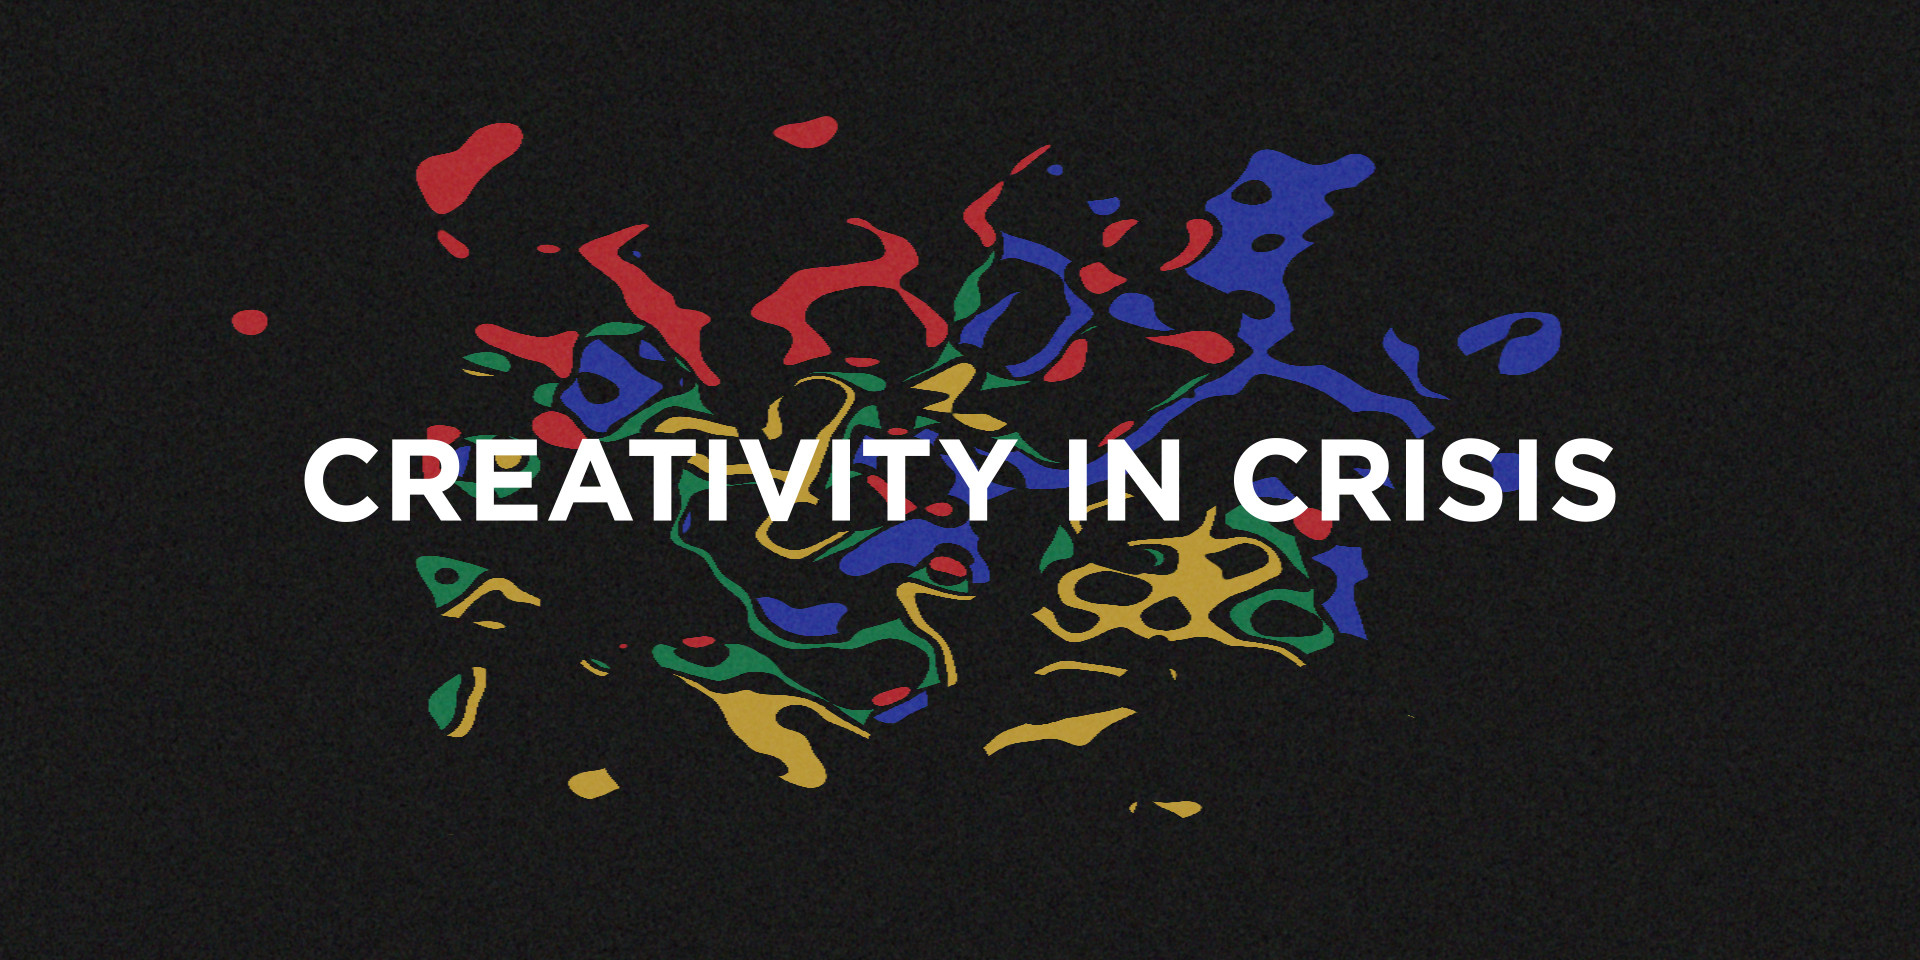 creativity in crisis